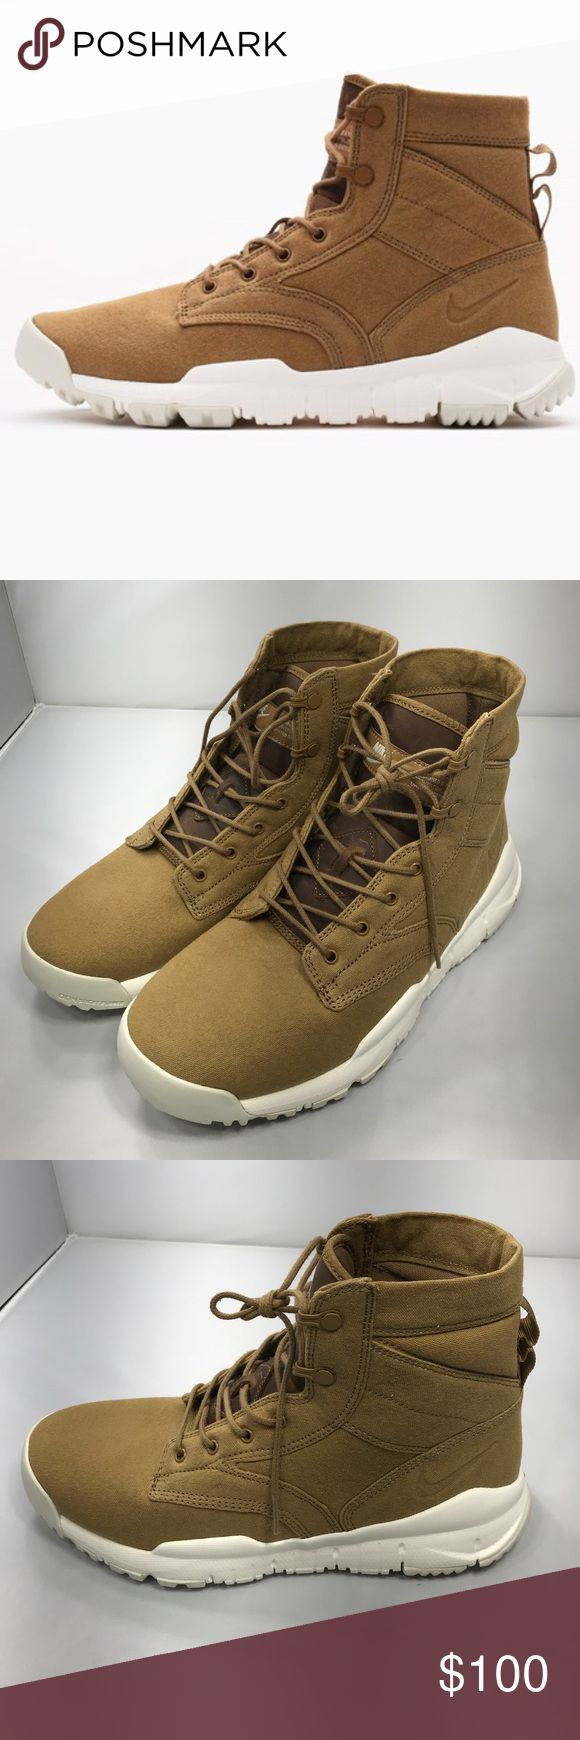 "New Nike SFB 6"" Canvas NSW New without box, Nike Canvas Boot in Golden Beige. This Limited Edition Special Field Boot has a lightweight canvas upper, a memory foam sockliner, and a lug patterned sole made from sticky rubber, for extra traction. 844577 200 Nike Shoes Boots"